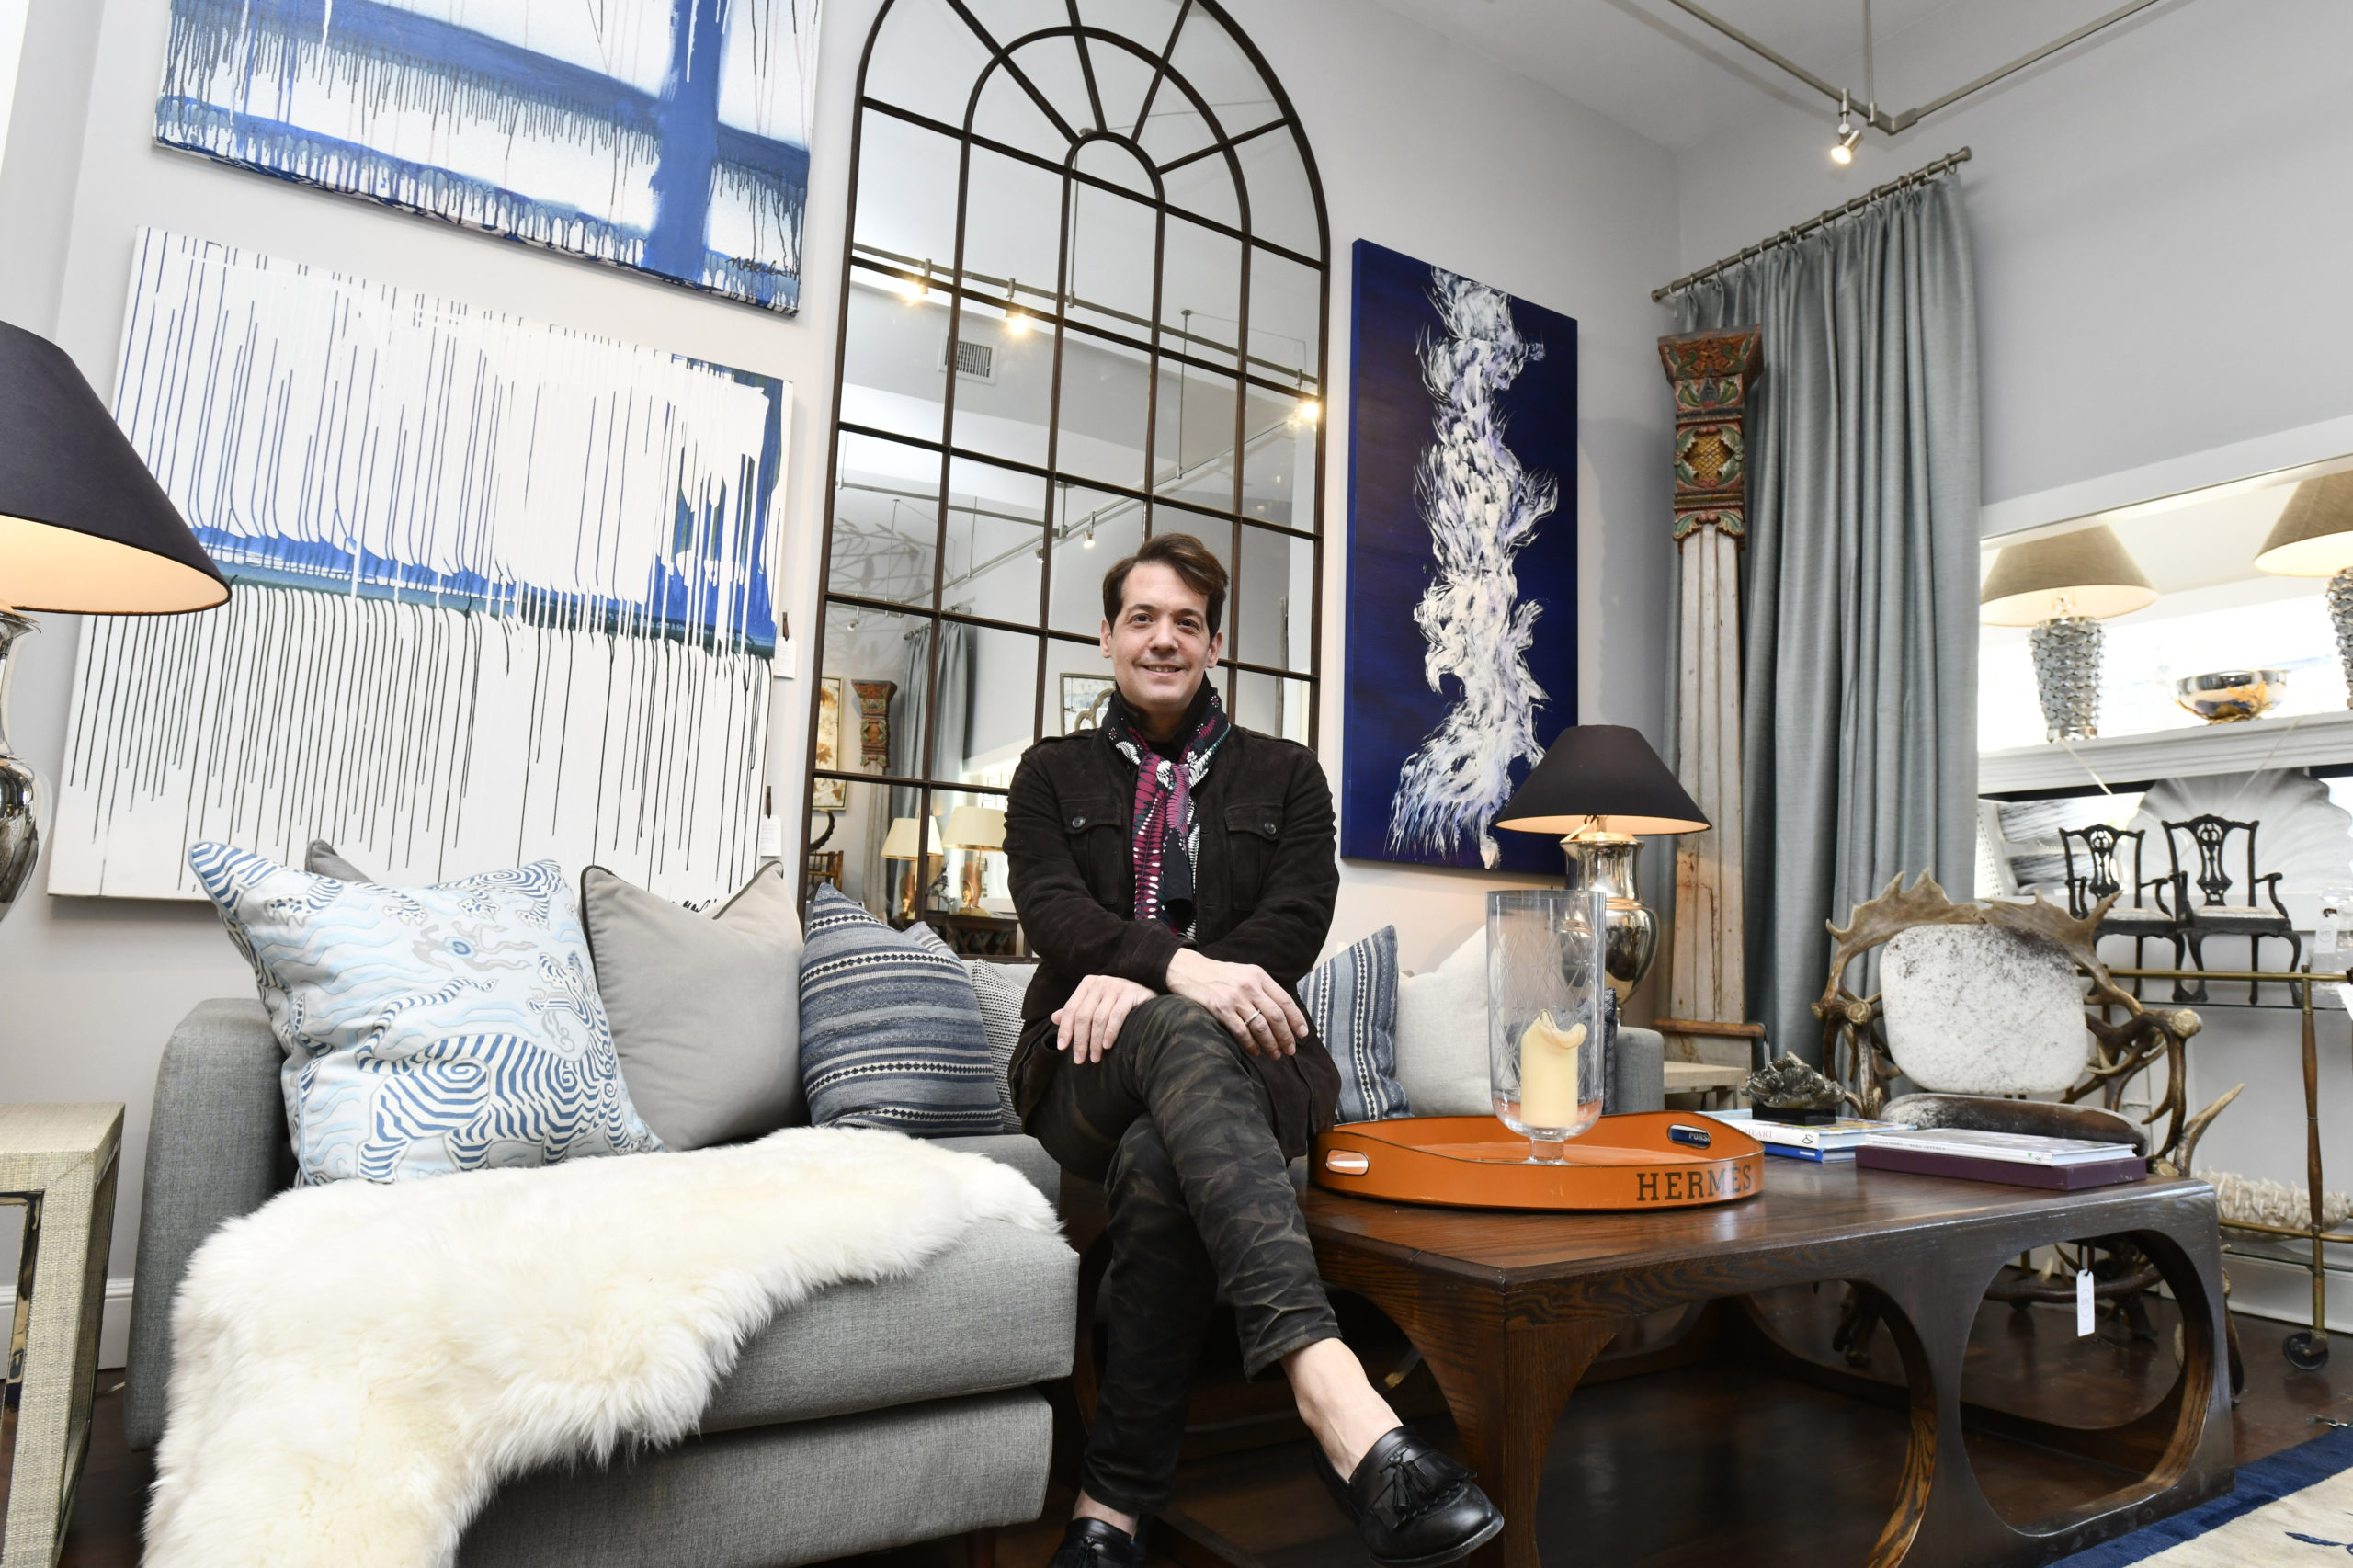 March 7 -- Old Town Crossing proprietor Sean Bruns at the interior design firm's new location on Hampton Road in Southampton Village. When Old Town W Crossing, a preeminent Southampton interior design firm, opened in 1978, it enjoyed one of the perks of a bygone Hamptons era: exceptional foot traffic. Perched, at the time, on Main Street, and visible to all manner of passersby, the showroom attracted a steady influx of customers, cementing the business as a Southampton stalwart. But, five years ago, when general manager and designer Sean Bruns took over as proprietor of the business, Old Town Crossing relocated to its warehouse on Mariner Drive.